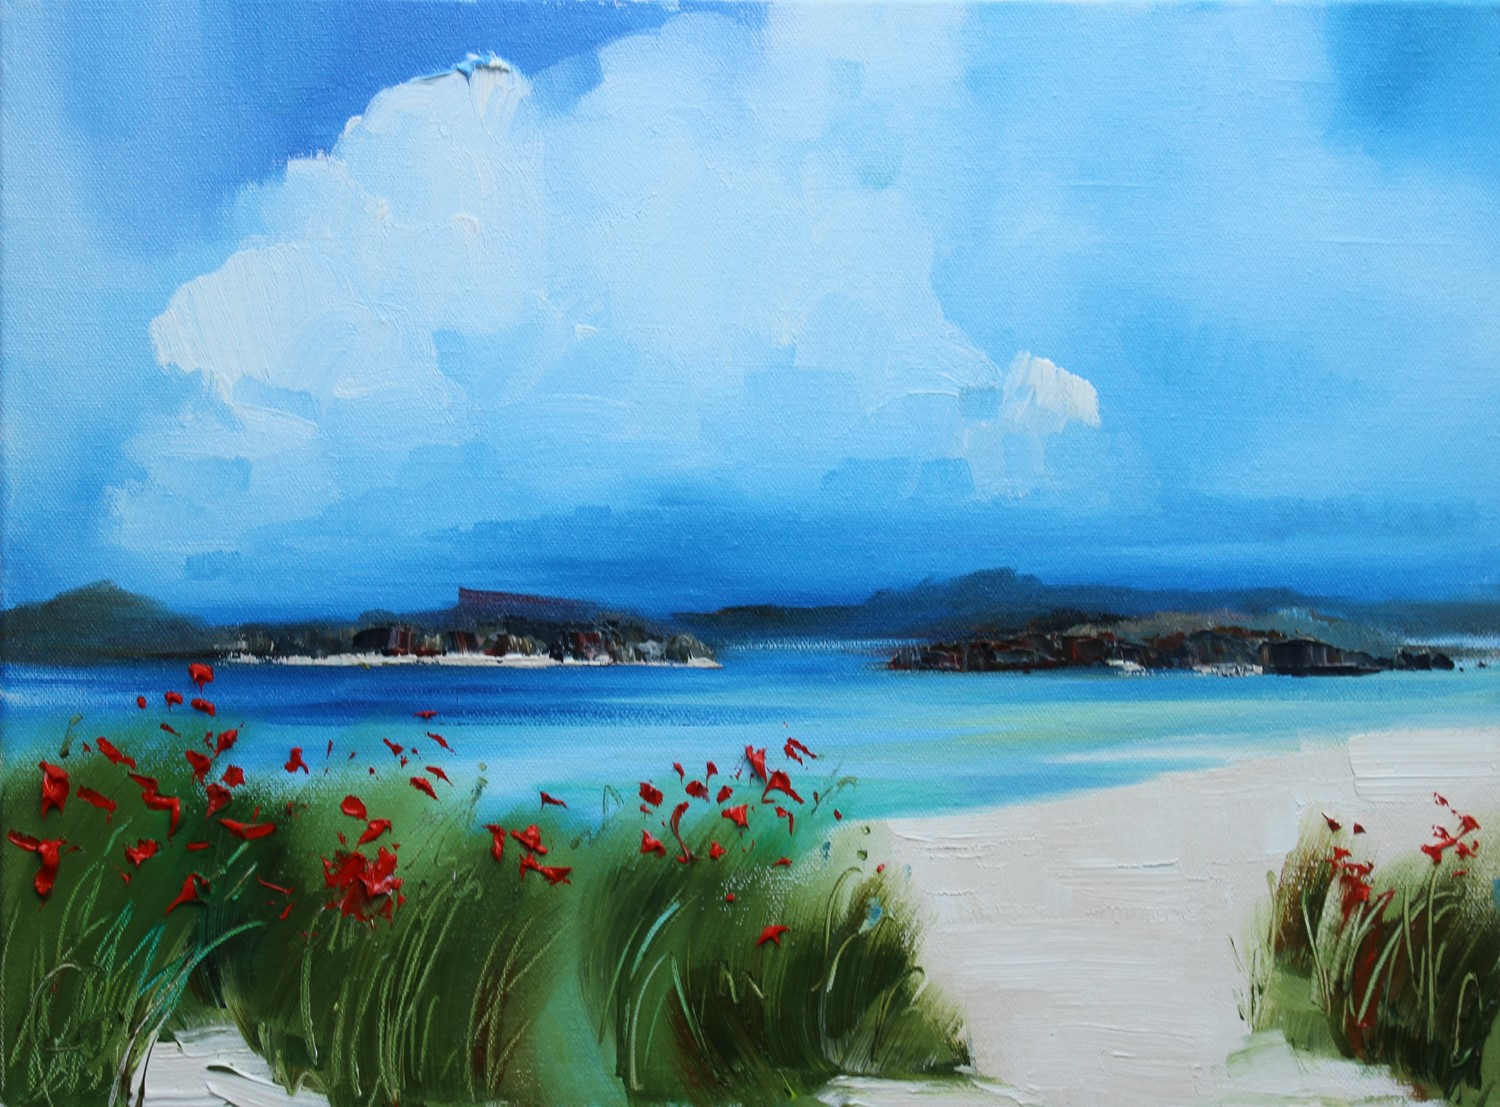 'On a bright summer day' by artist Rosanne Barr